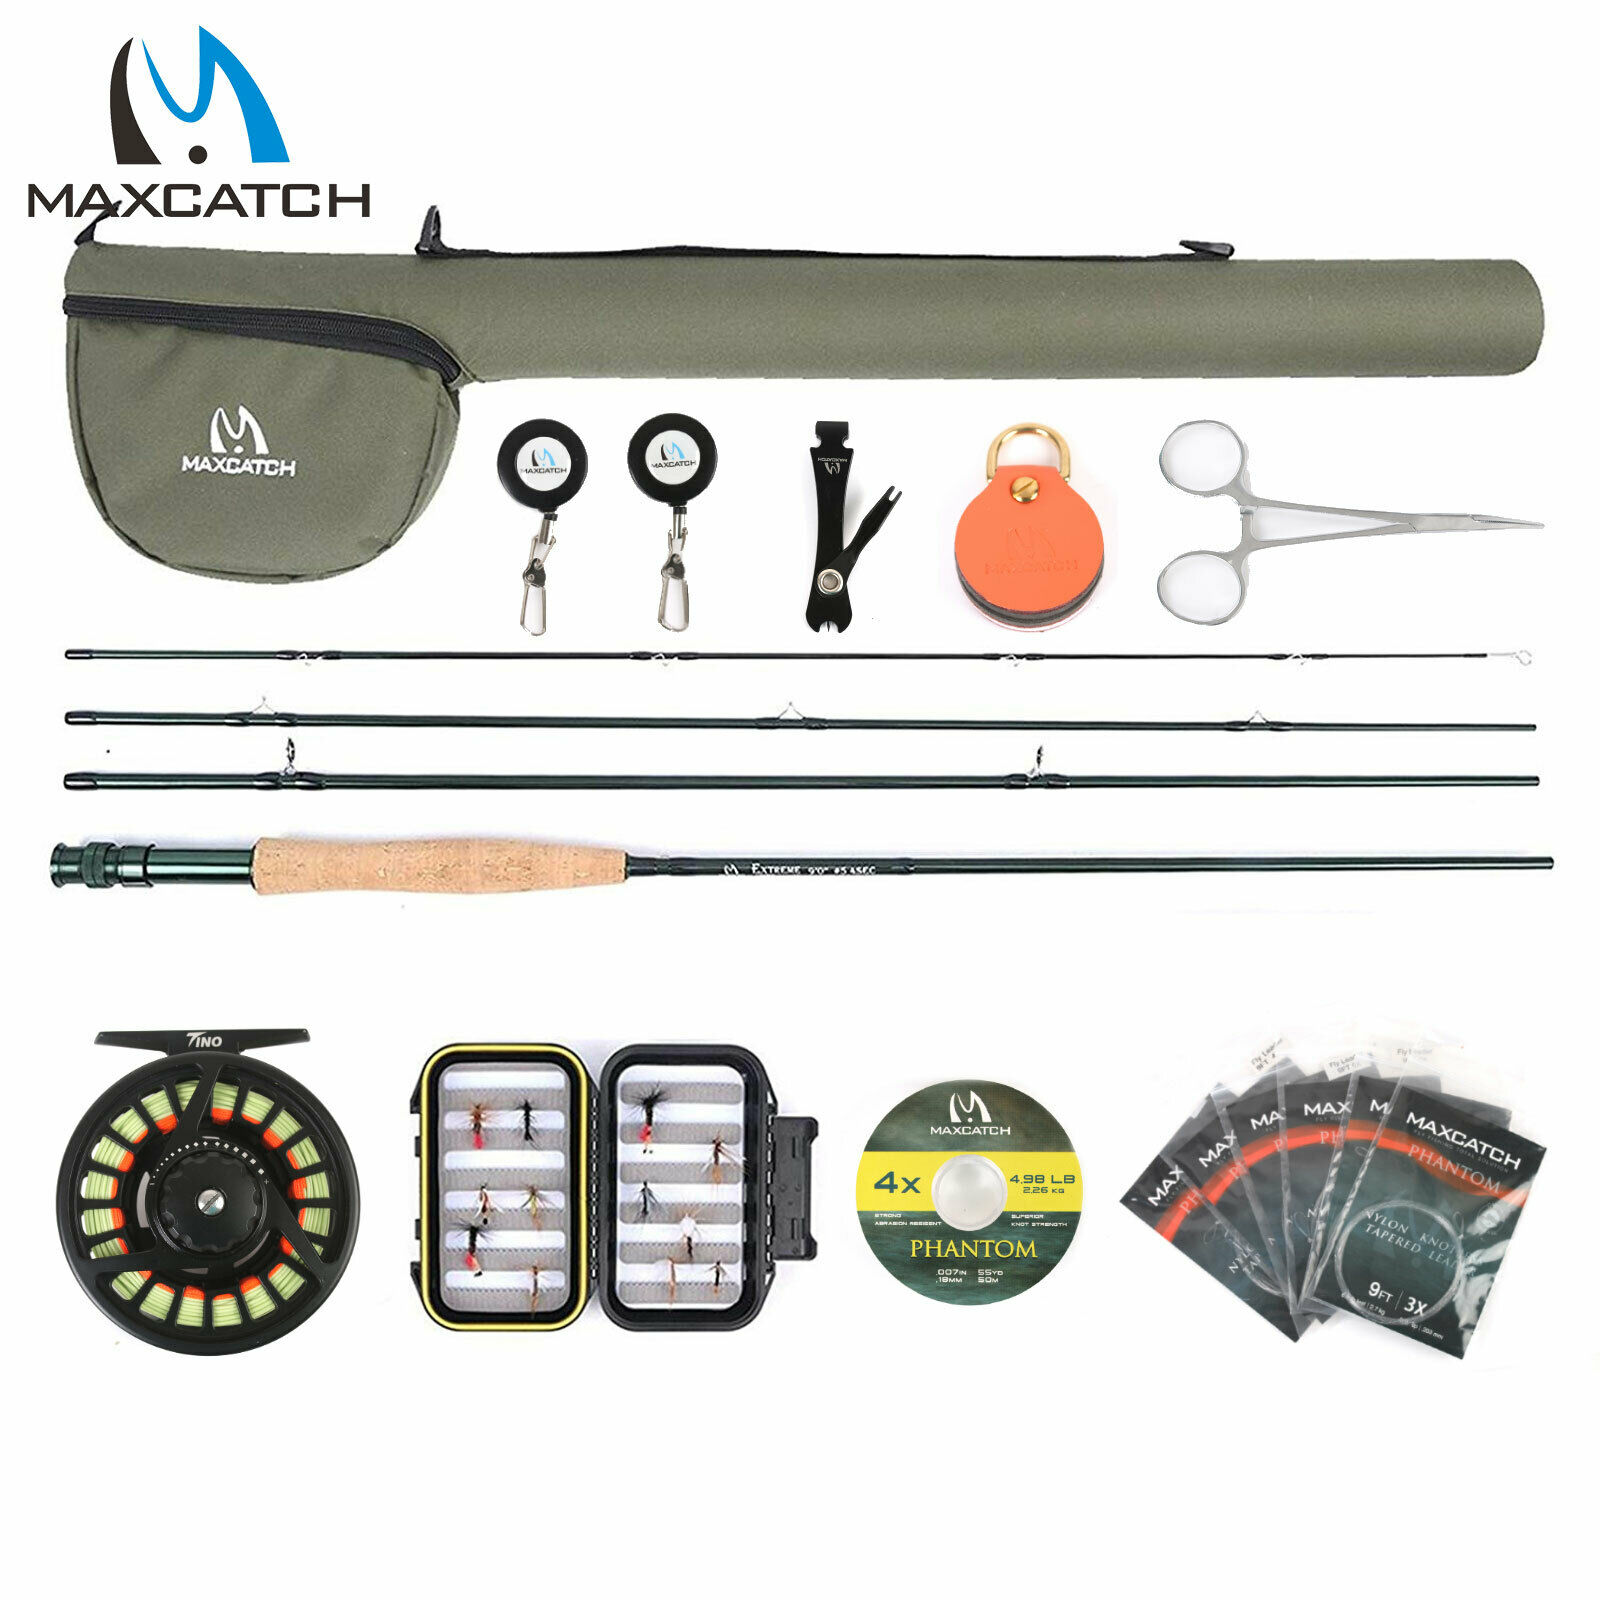 Maxcatch 5 6 7 8wt Extreme Fly Fishing Rod and Reel Combo, ligne Mouche, boîte, mouches